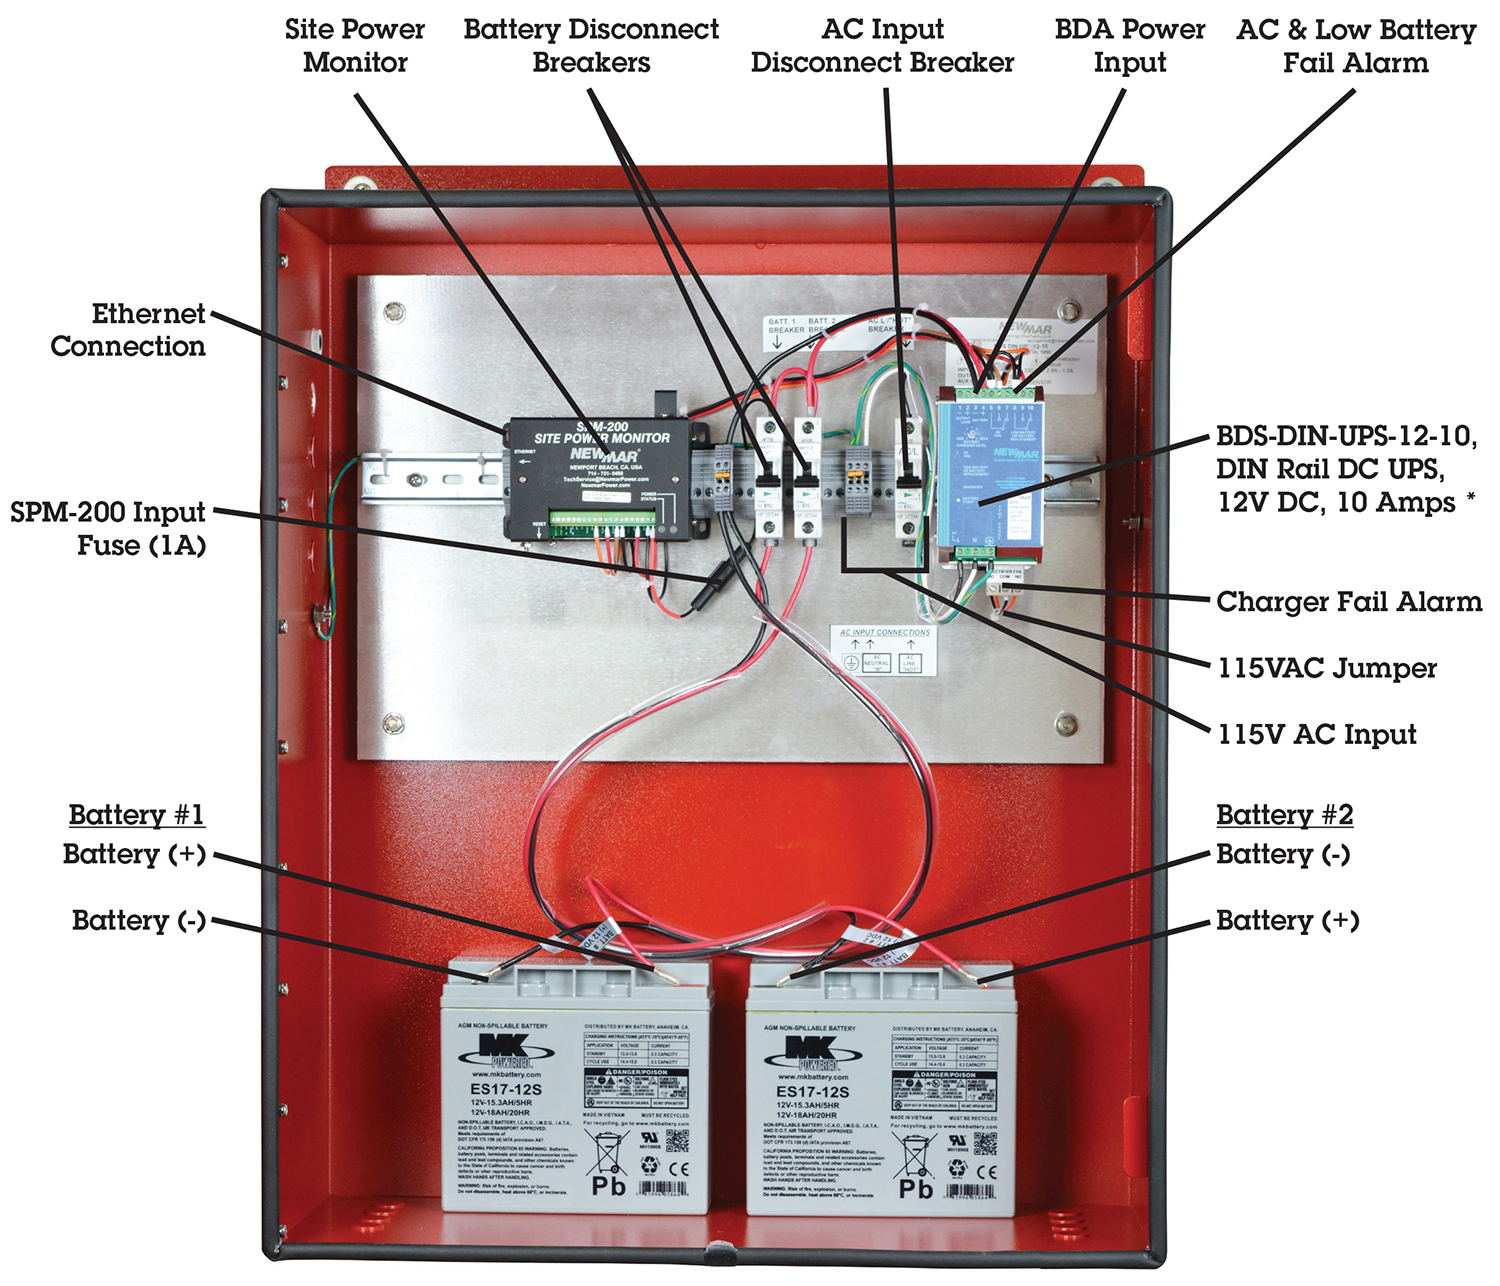 Ups Battery Backup Wiring Diagram Library Apc Public Safety Das Power Pe Series Enclosures Nfpa 1221 In Building Standards 12 Vdc